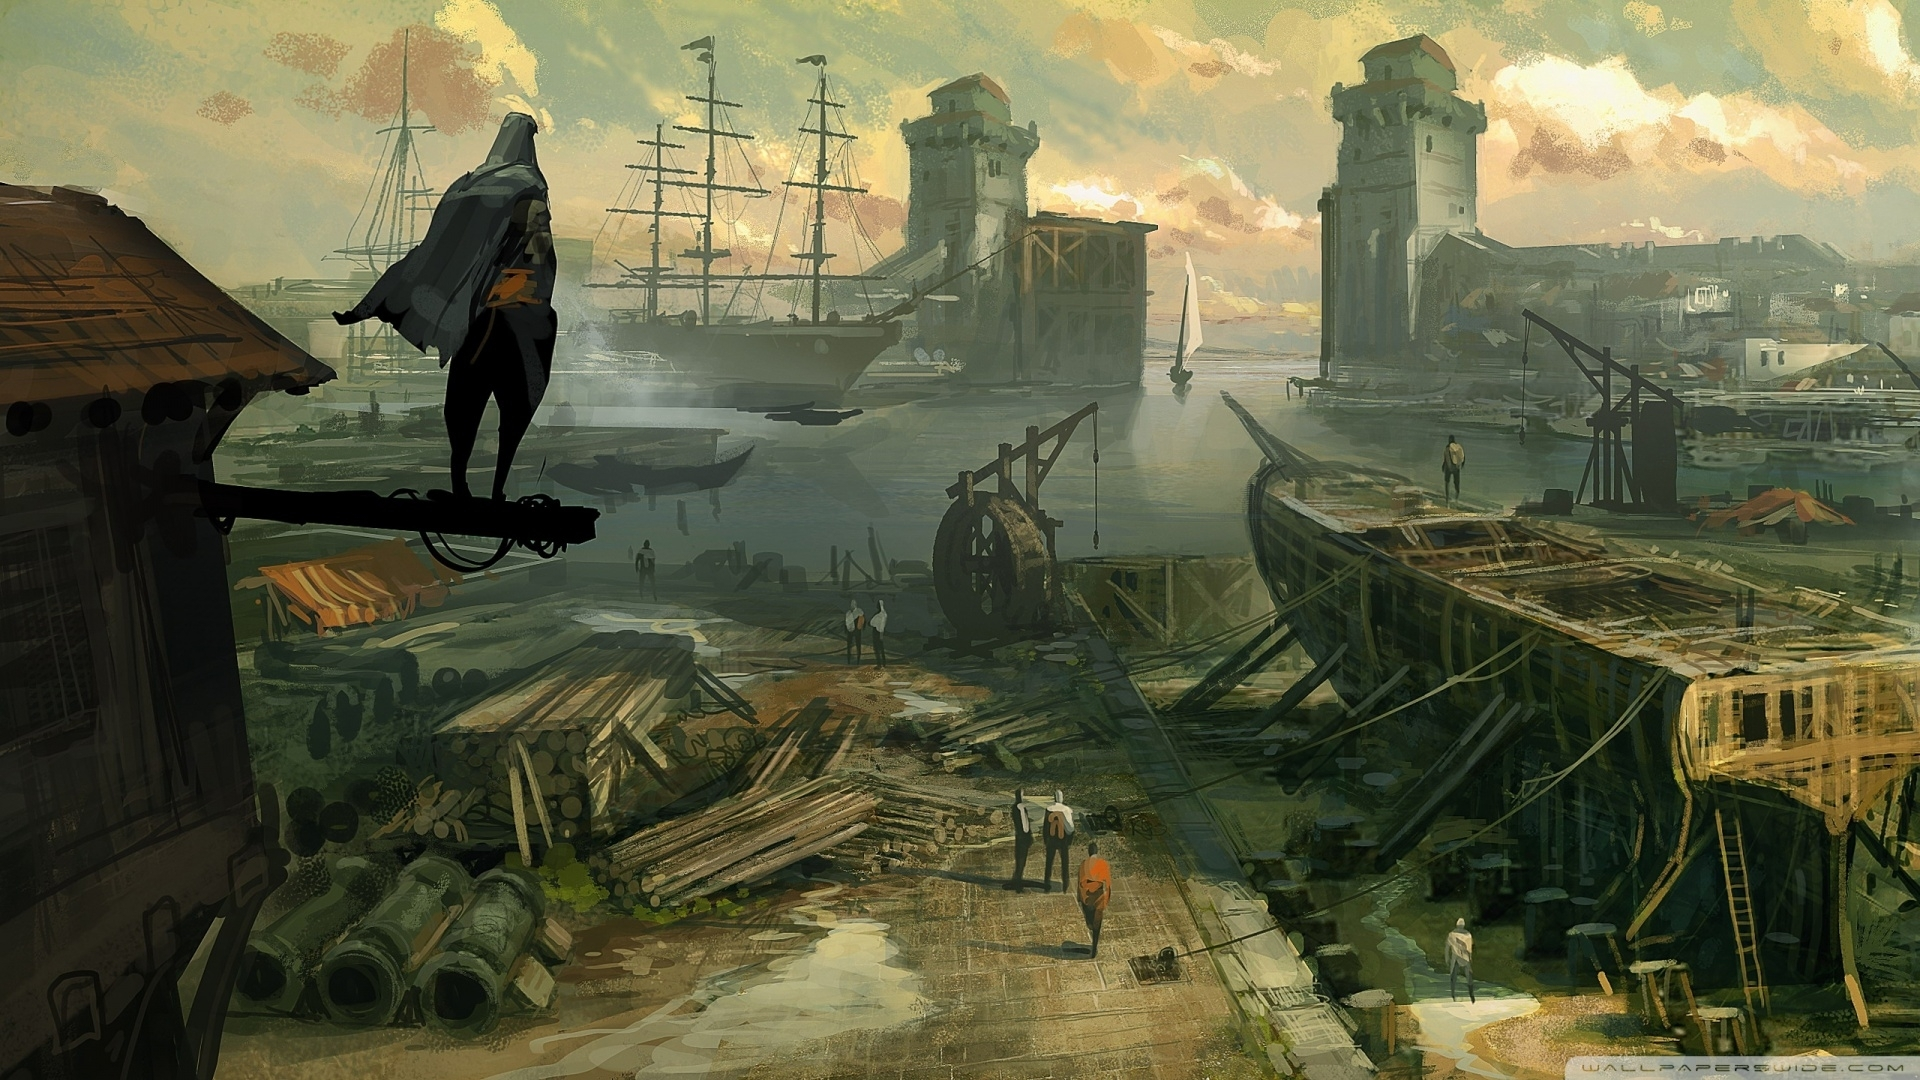 assassins creed revelations concept art-wallpaper-1920x1080 - 10 000